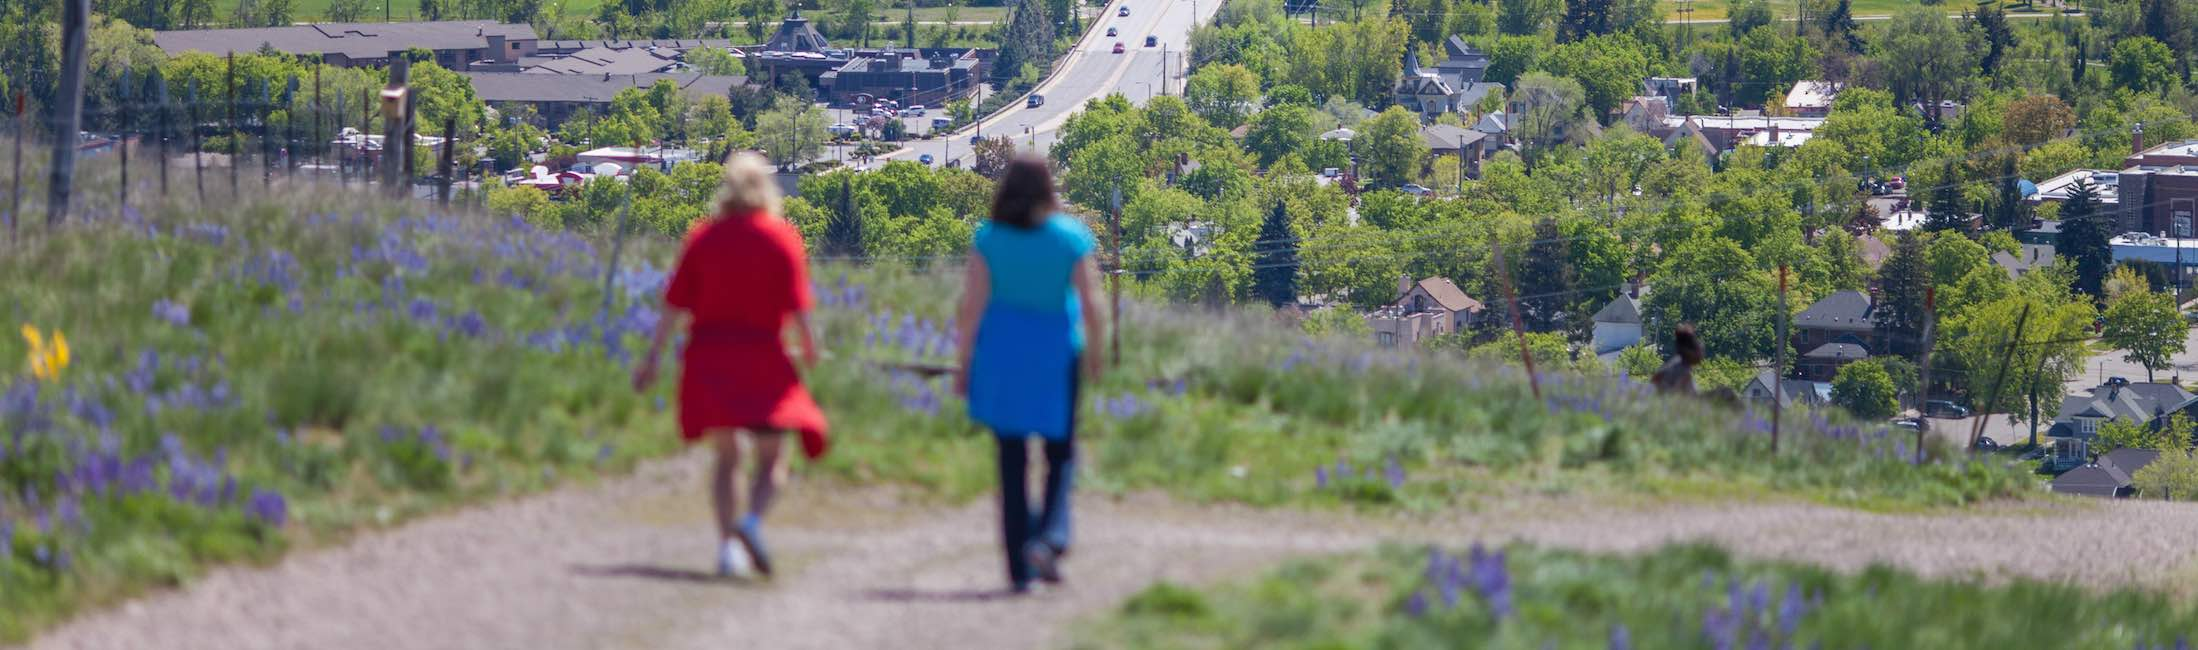 Staying Healthy While Visiting Missoula